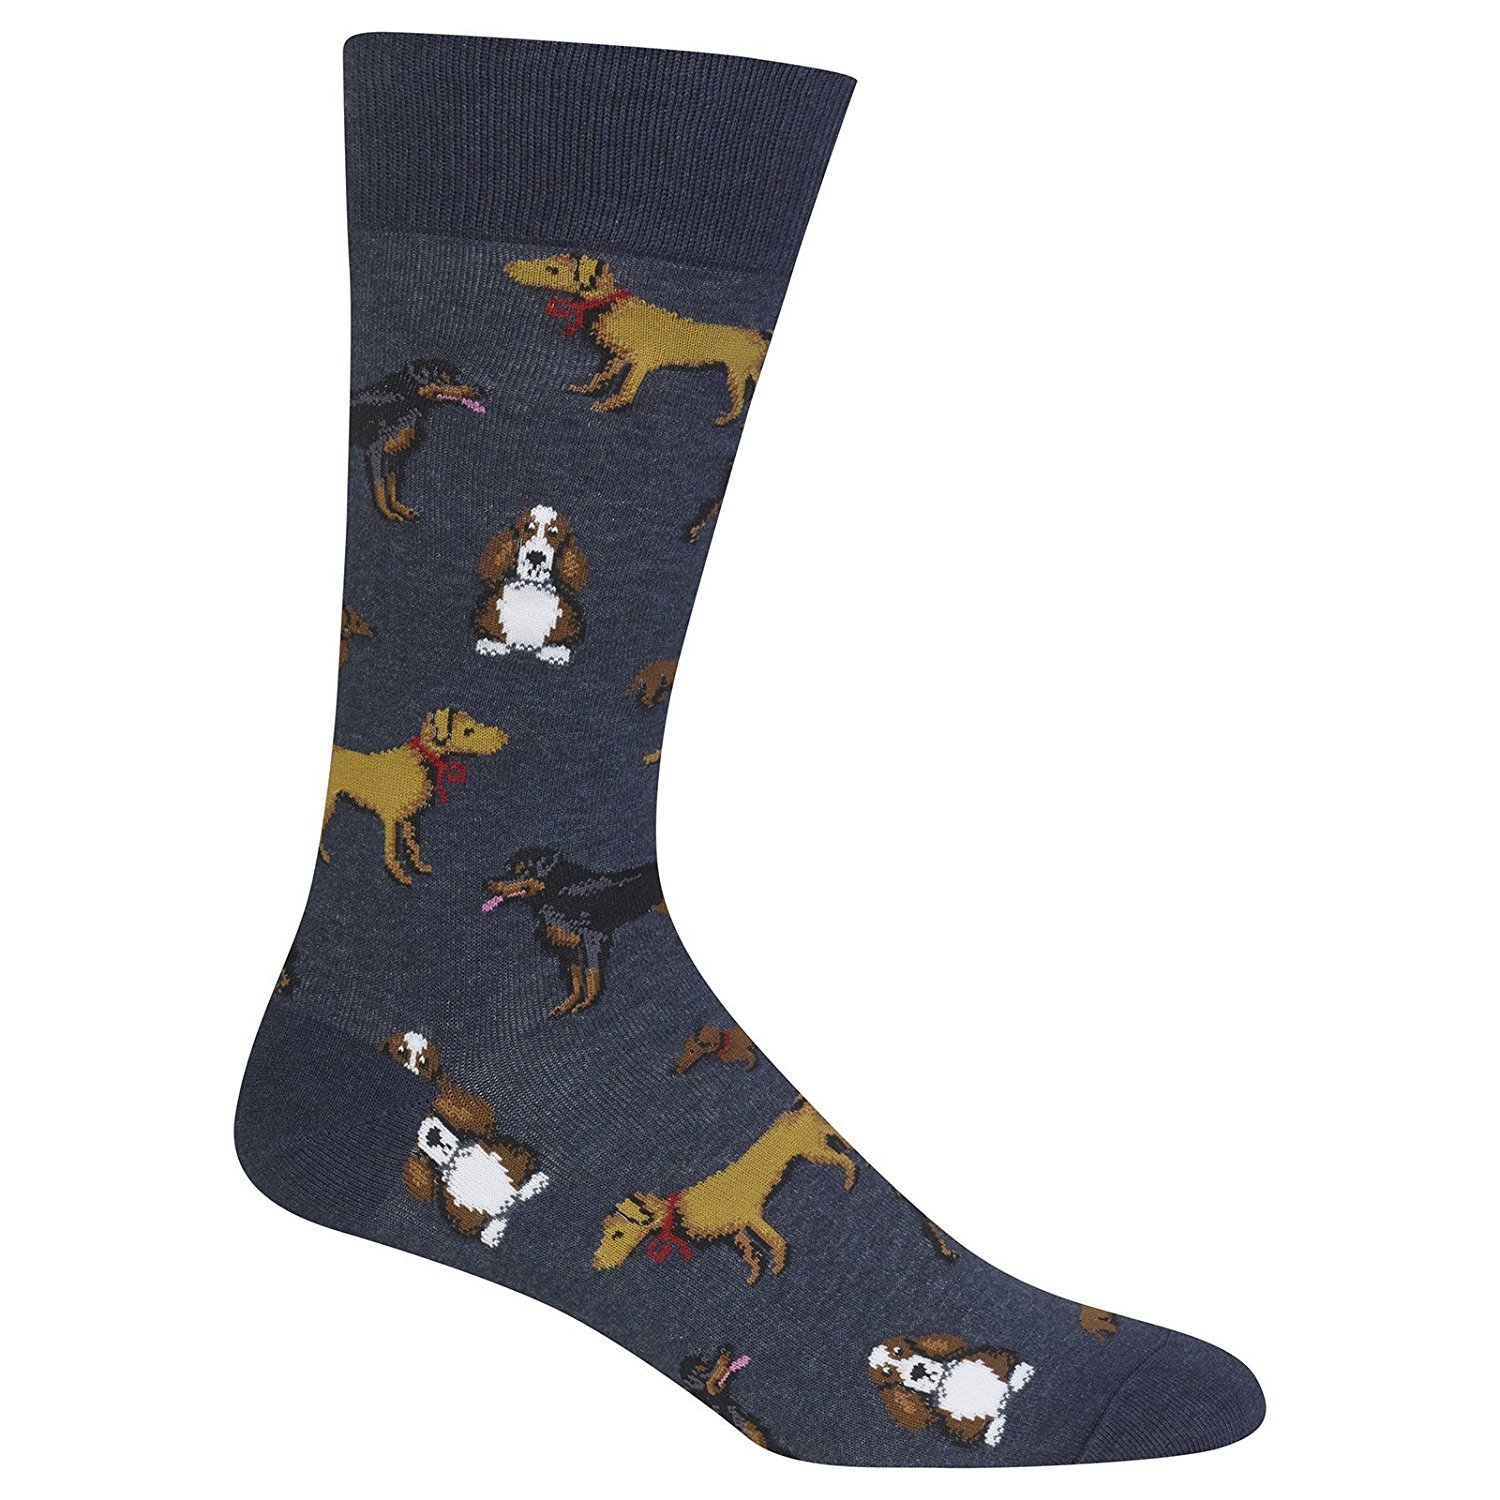 Hot Sox Mens Slack Crew, Multi Dogs DENH - Size: 10-13, Comes With a Helicase Brand Sock Ring